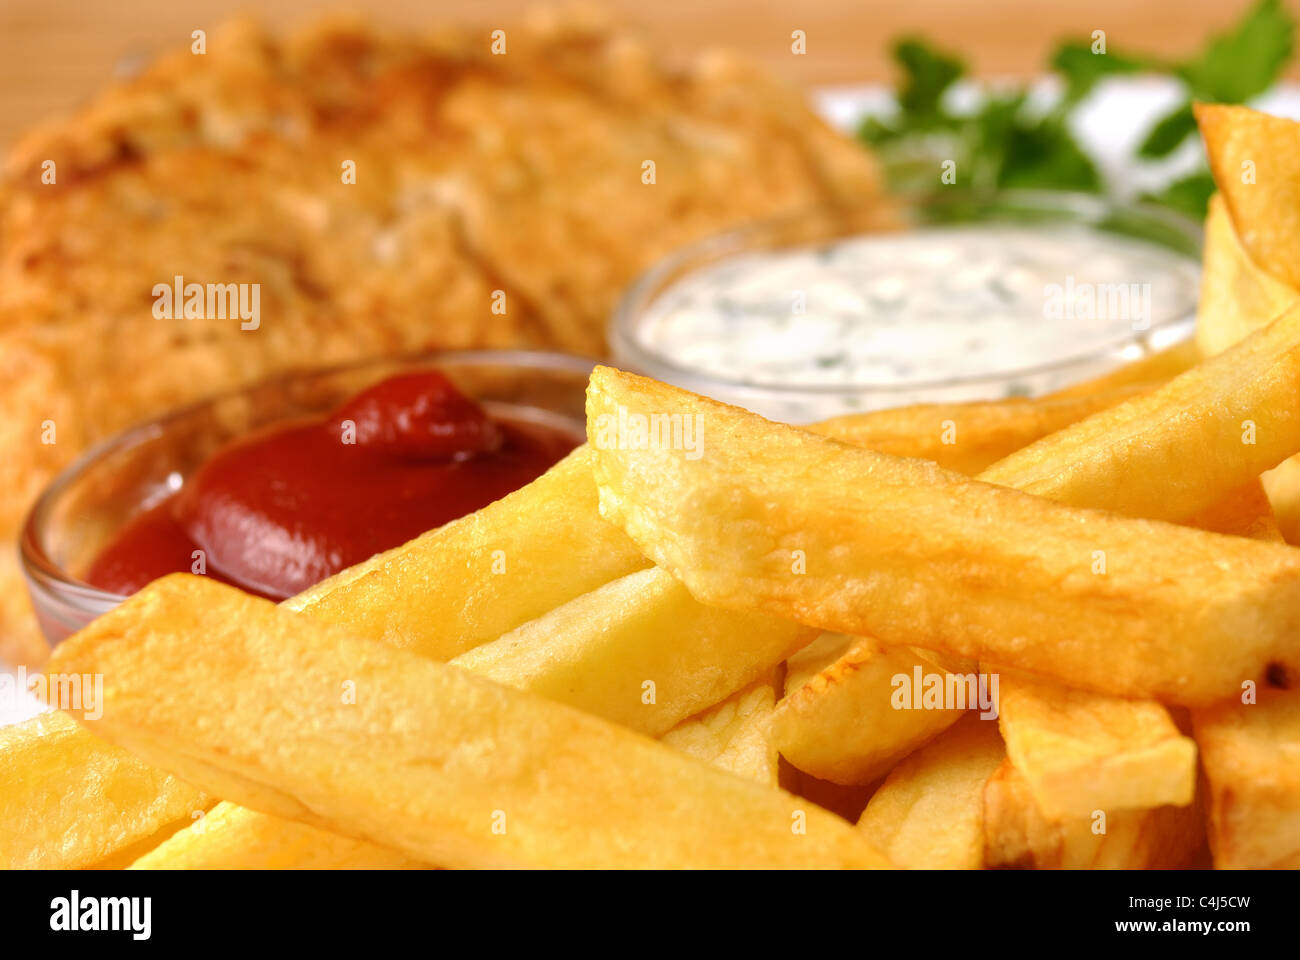 White plate with fish and chips, mayo and ketchup - Stock Image